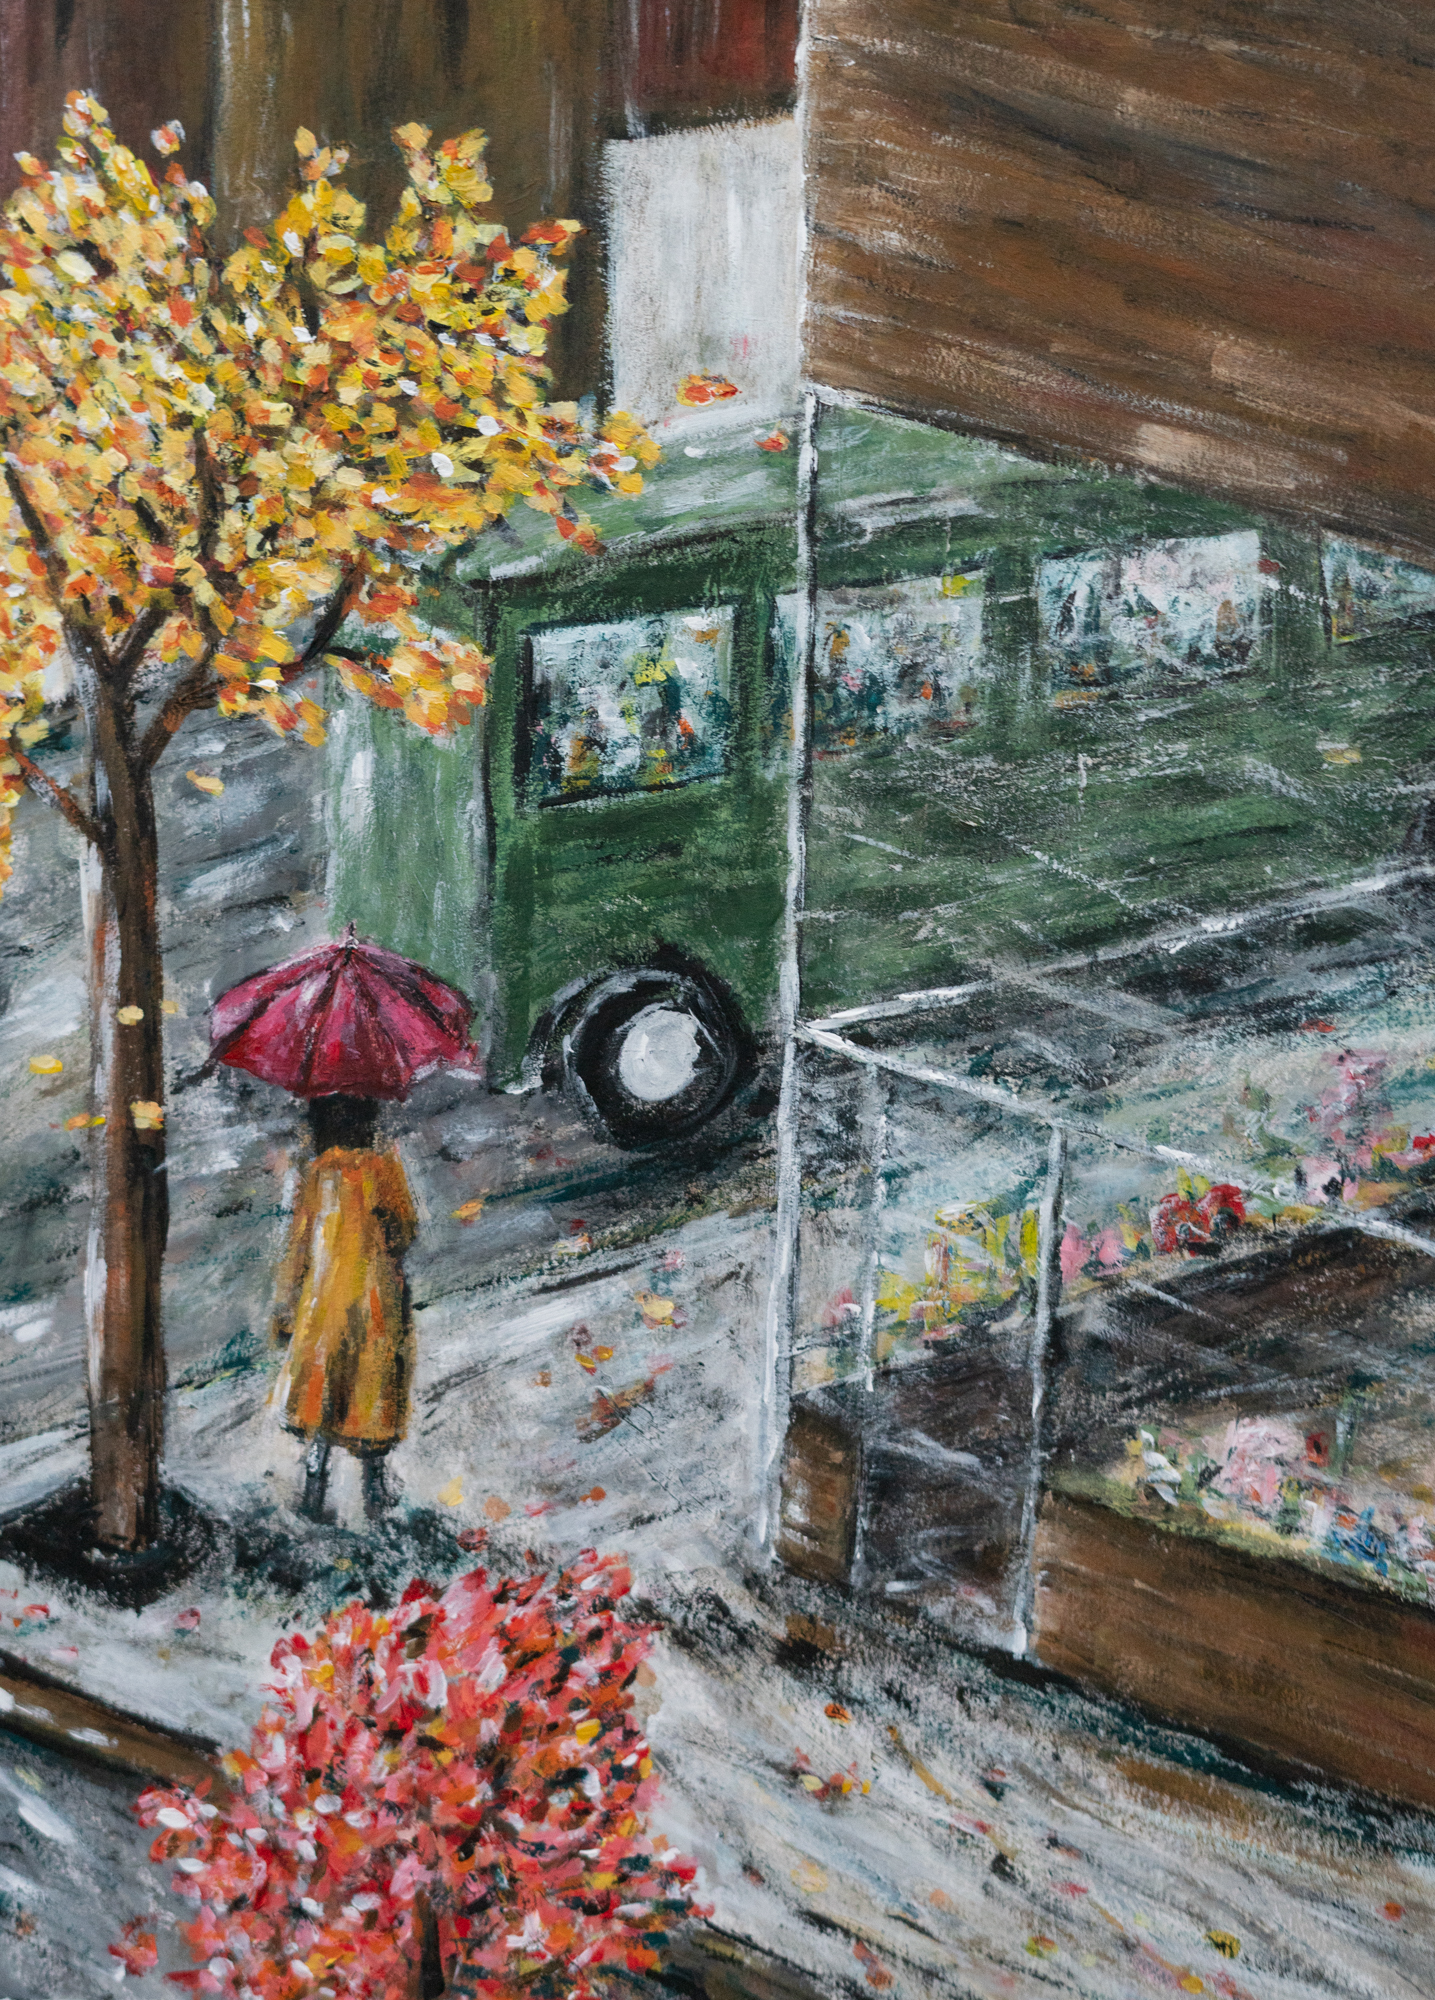 slip into rain green bus innocence mission painting art